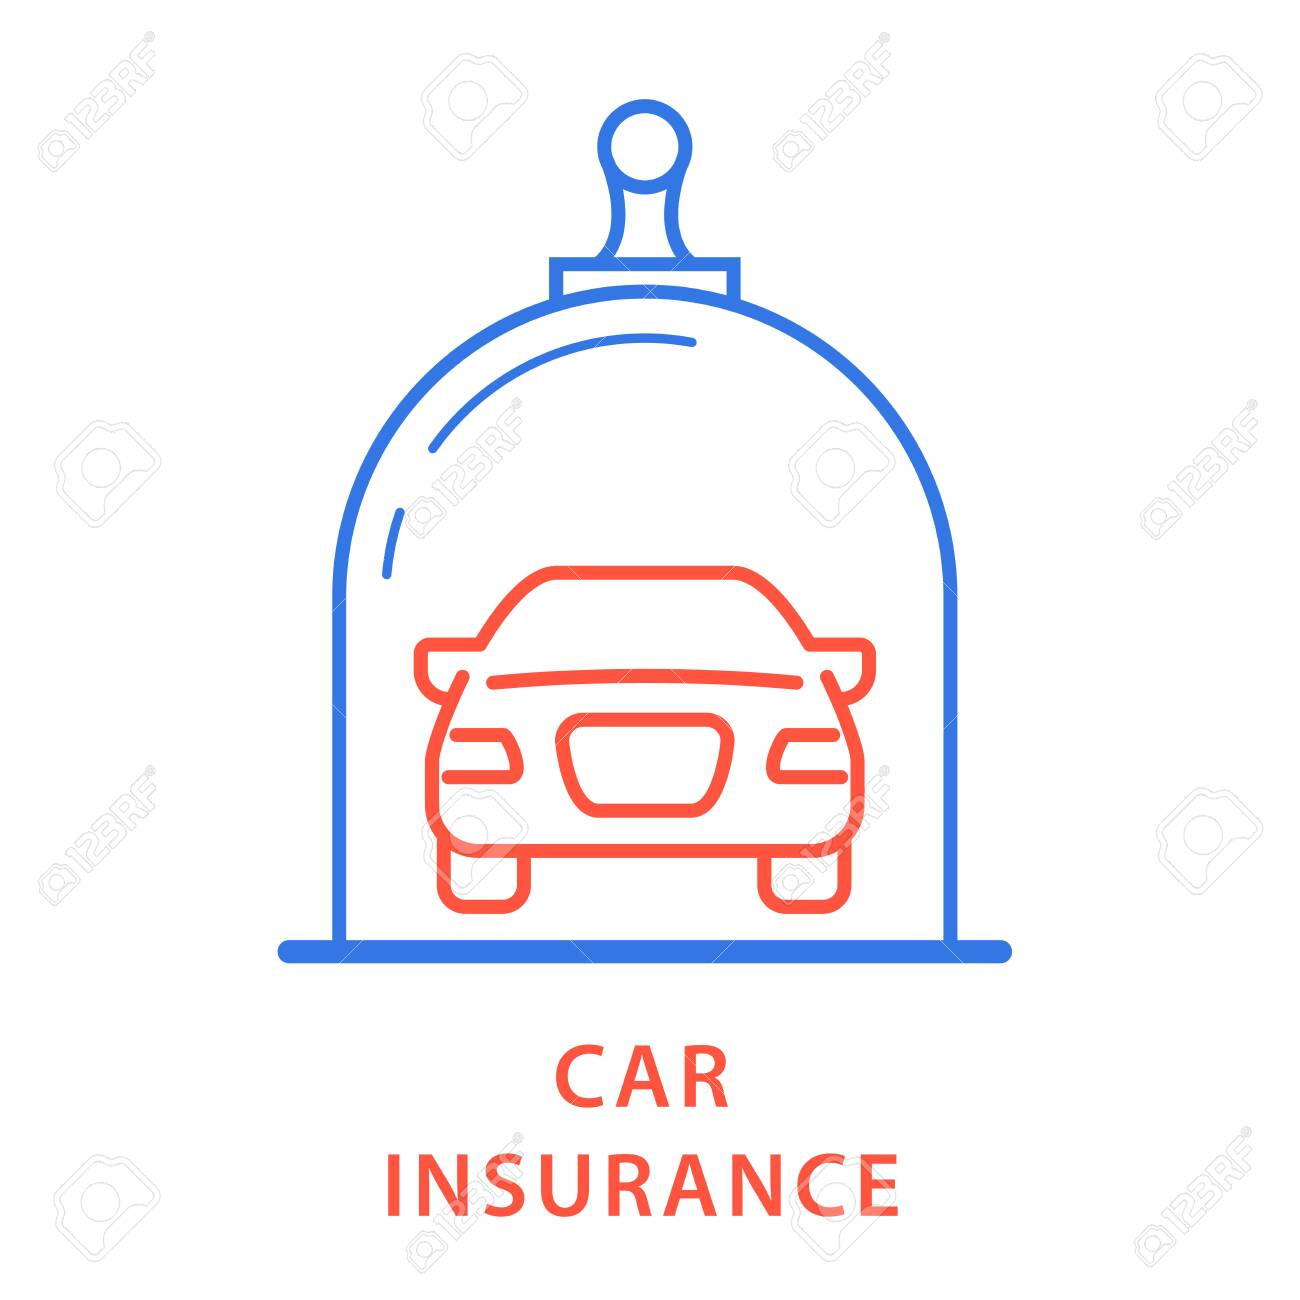 Vehicle insurance icon - car under glass dome, insurance protection - 140208660